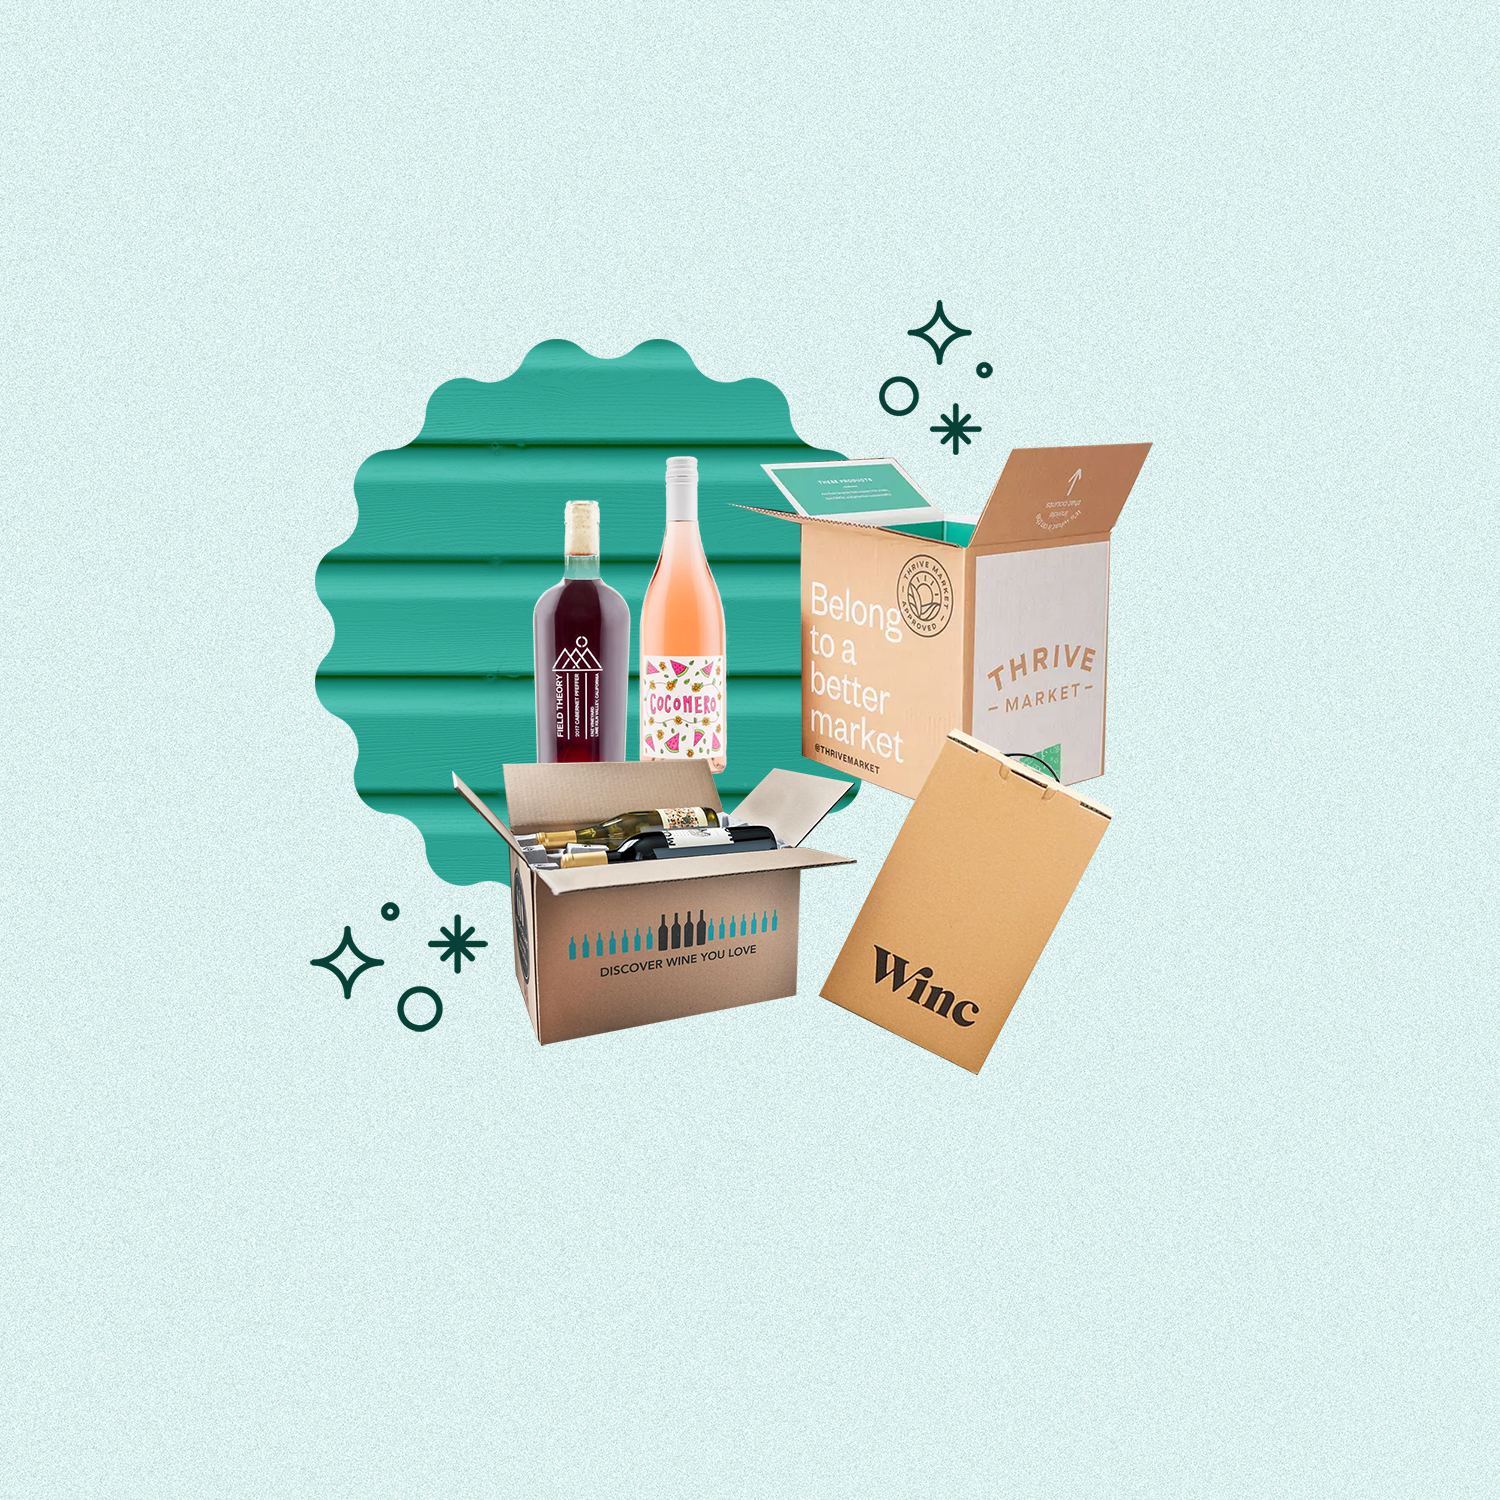 10+ Best Wine Subscription Boxes 2021 - Top Wine Subscription Gifts